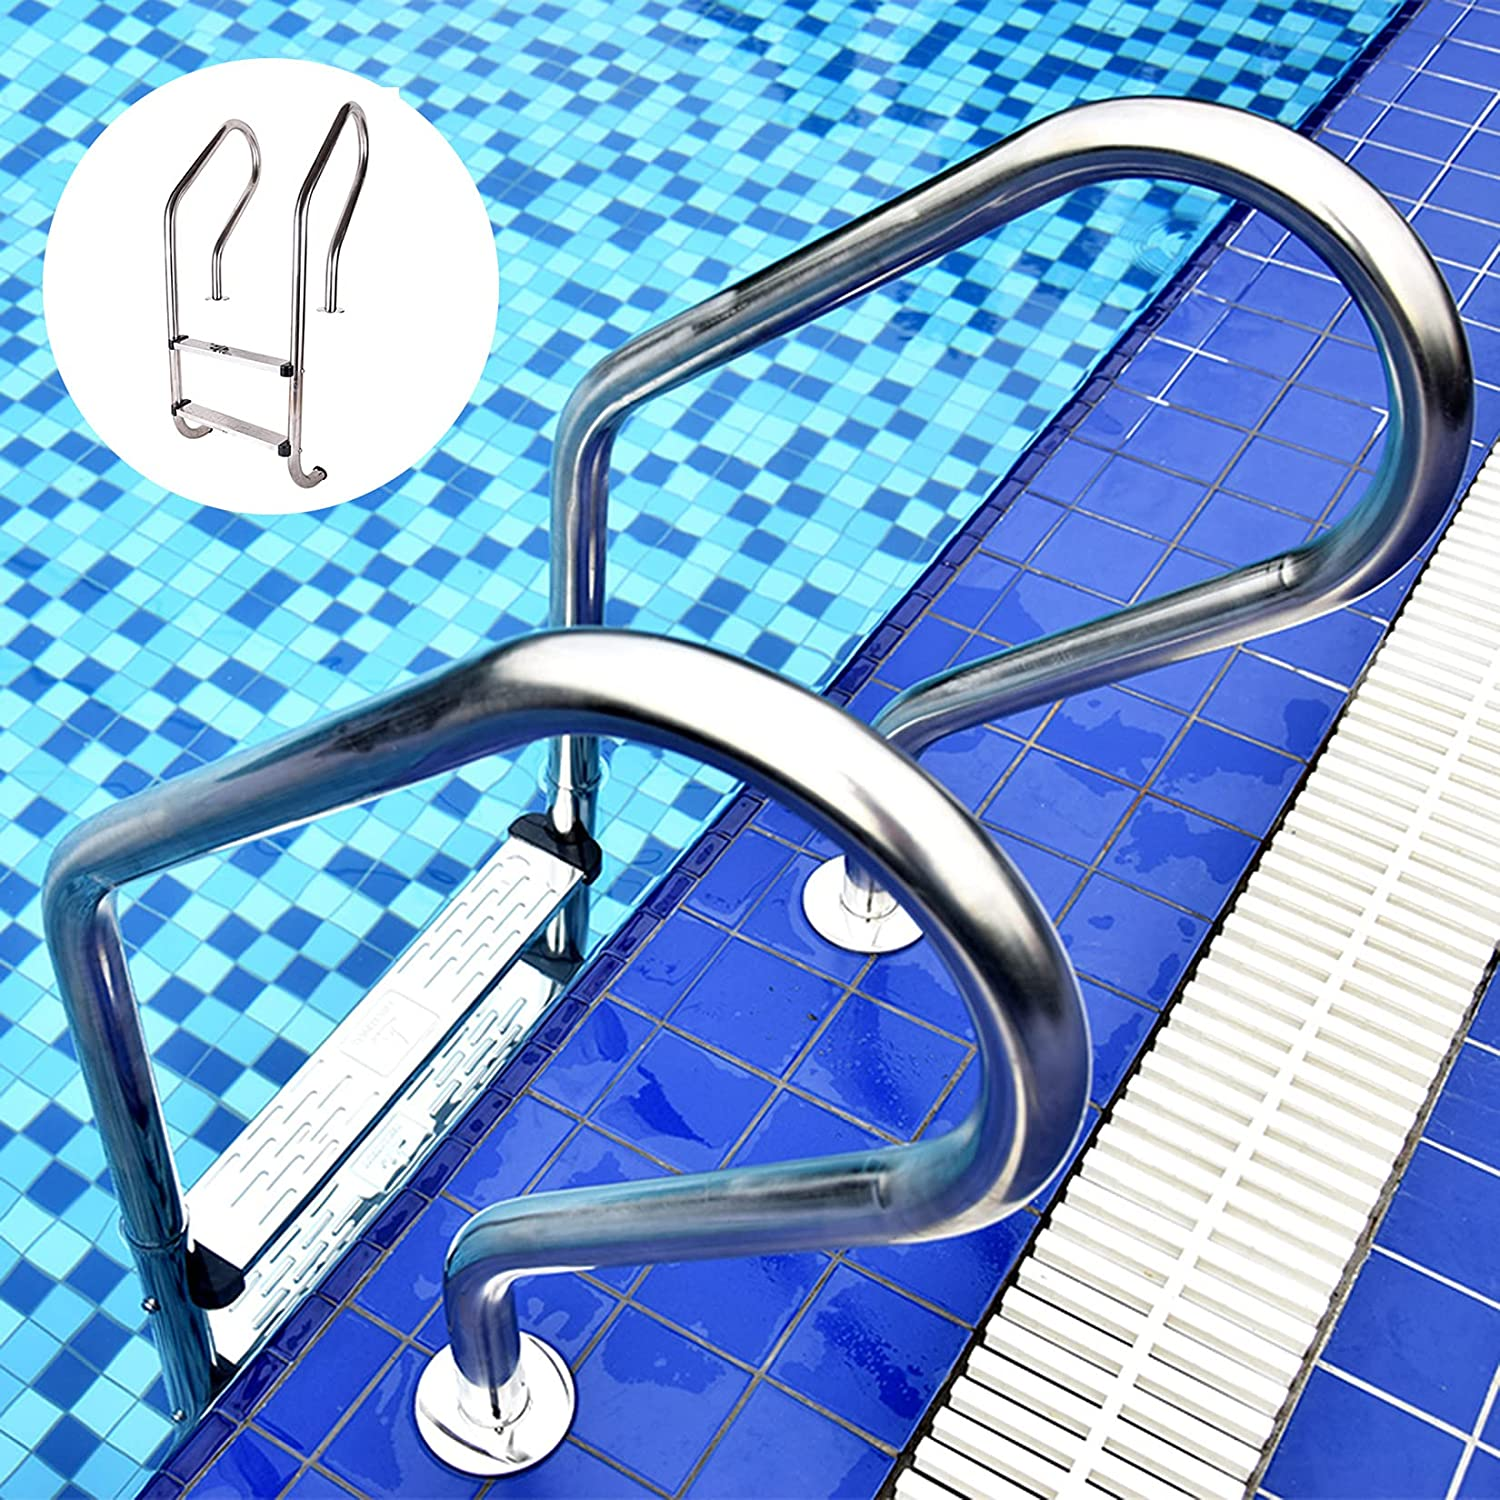 Handrail Railing Dedication Don't miss the campaign Pool Stair Ladders Anti-silp Pedal with